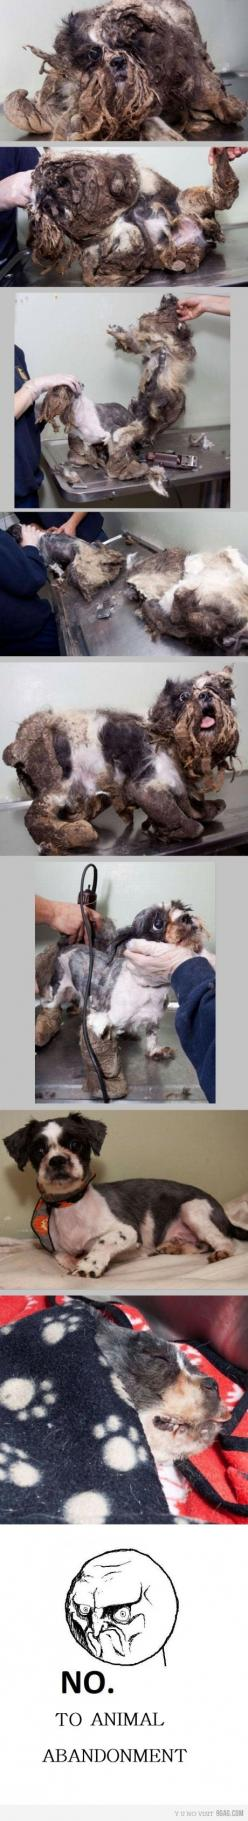 Animal abuse.: Doggie ́S, Animal Rights, Animal Cruelty, Guy, Pet, Animal Abuse, Haircut, Animal Abandonment, Poor Baby